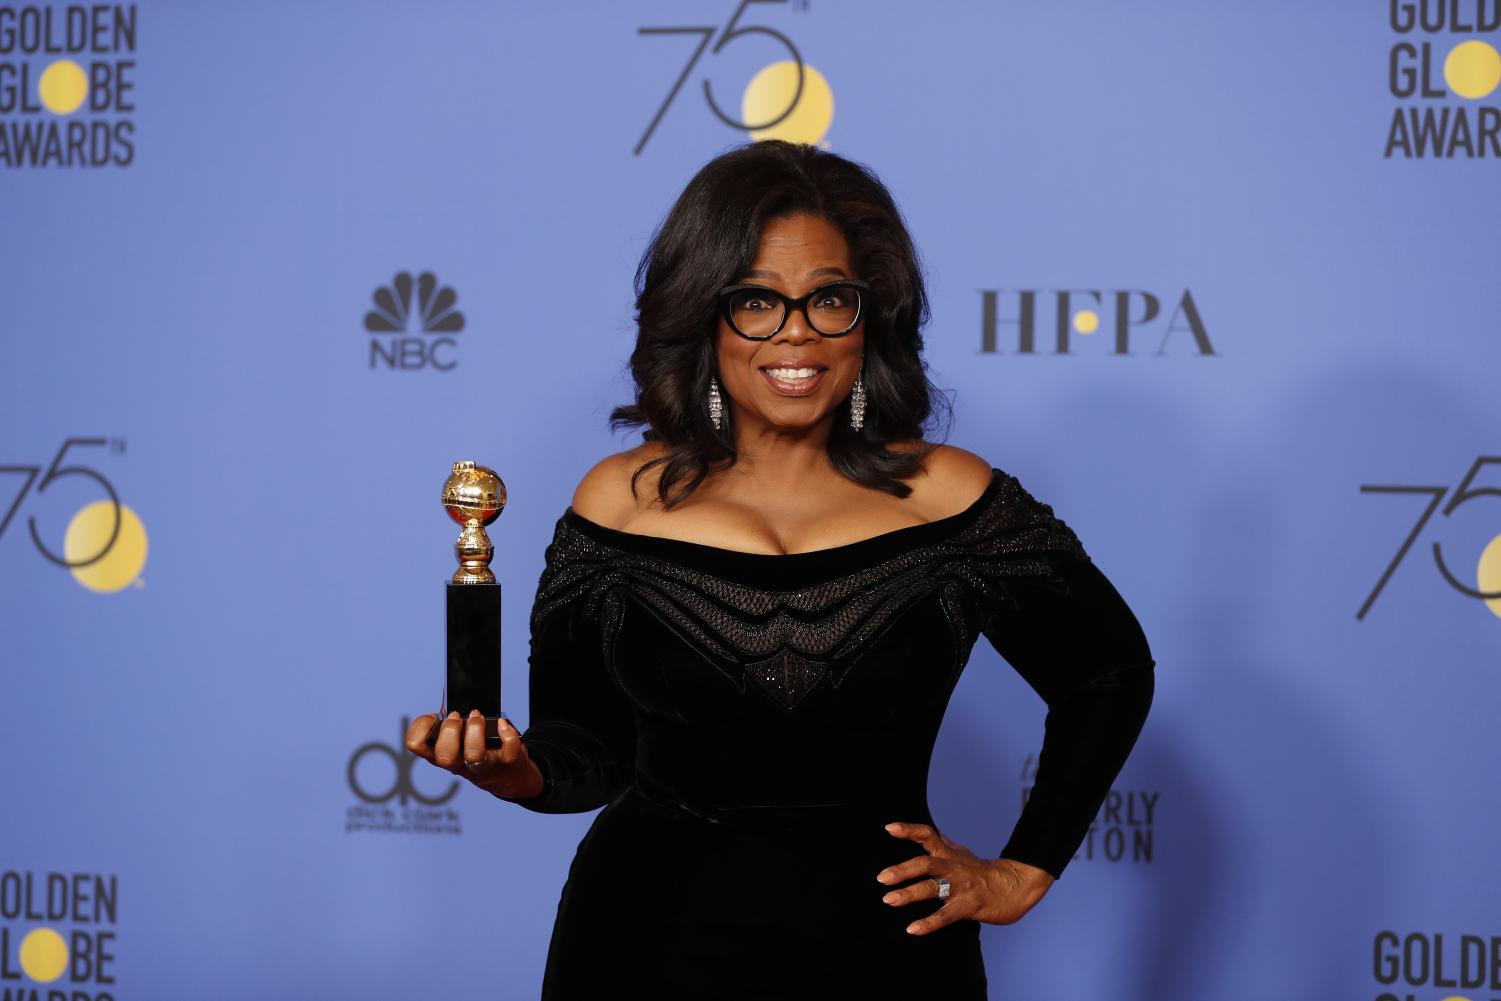 Oprah Winfrey backstage at the 75th Annual Golden Globes at the Beverly Hilton Hotel in Beverly Hills, Calif., on Sunday, Jan. 7, 2018. (Allen J. Schaben/Los Angeles